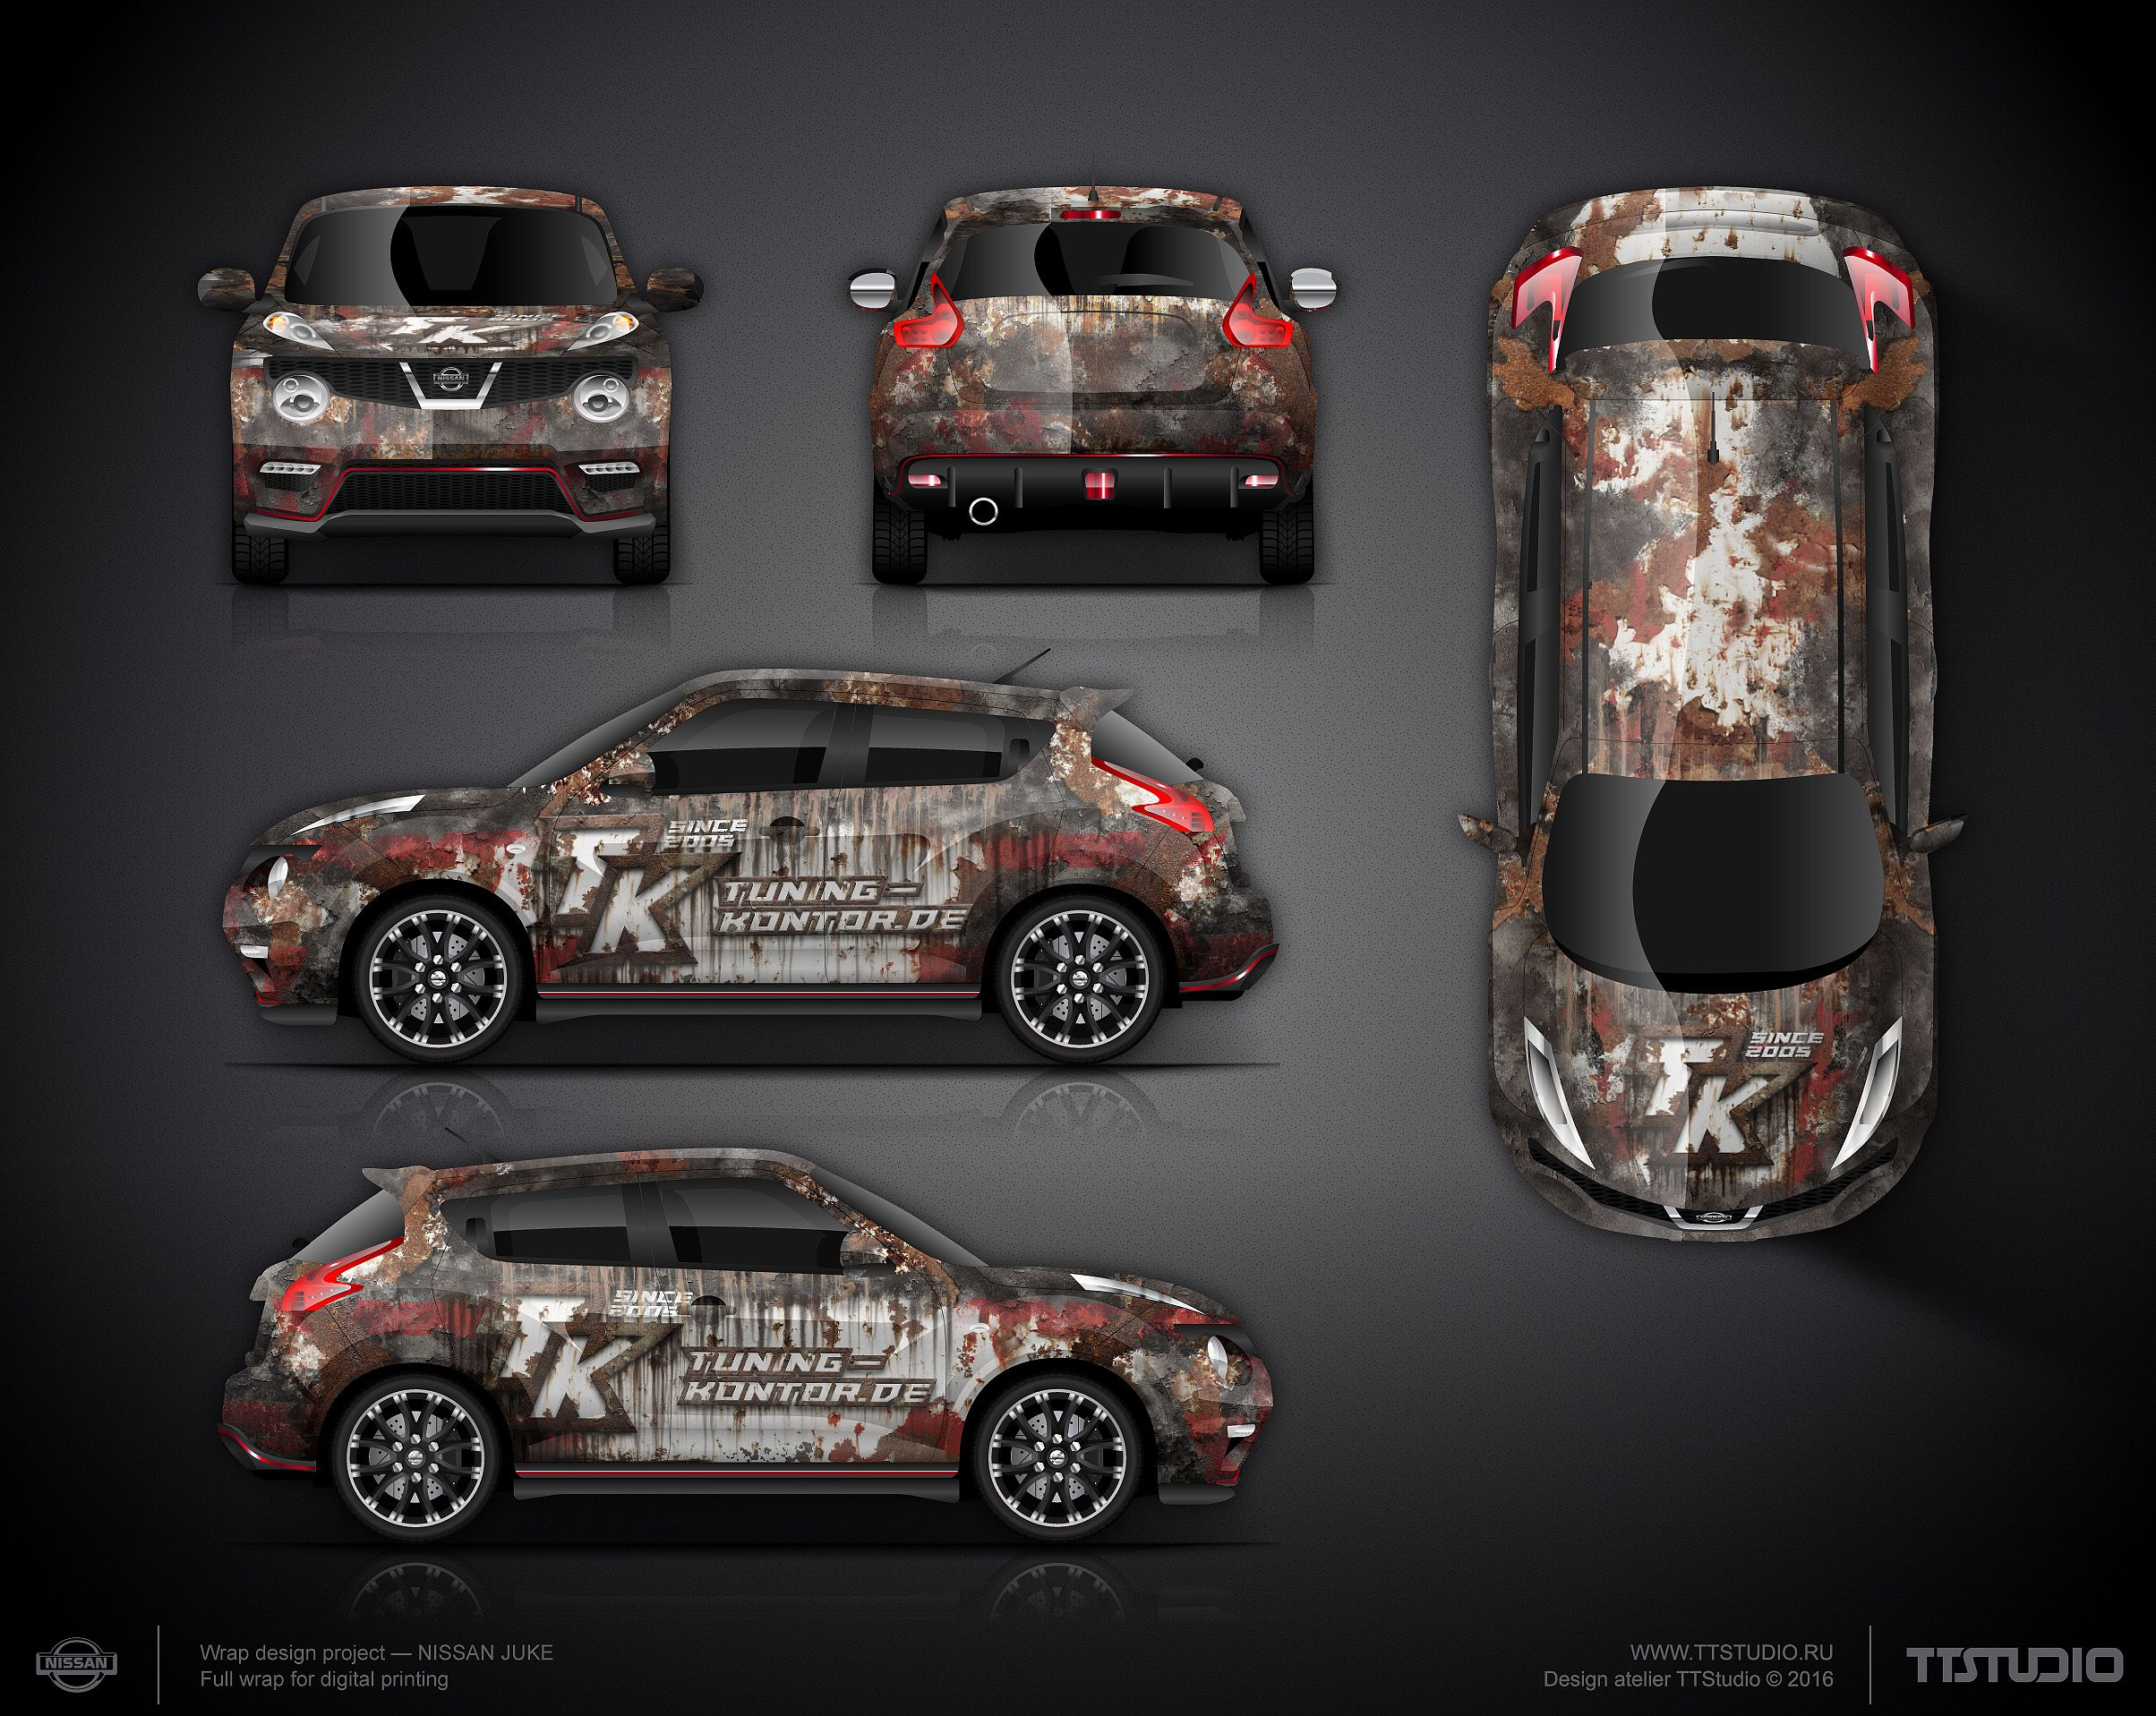 Car decals tribal graphic design zion series - The Approved Logo And Branding Wrap Design For Nissan Juke For Tuning Kontor De